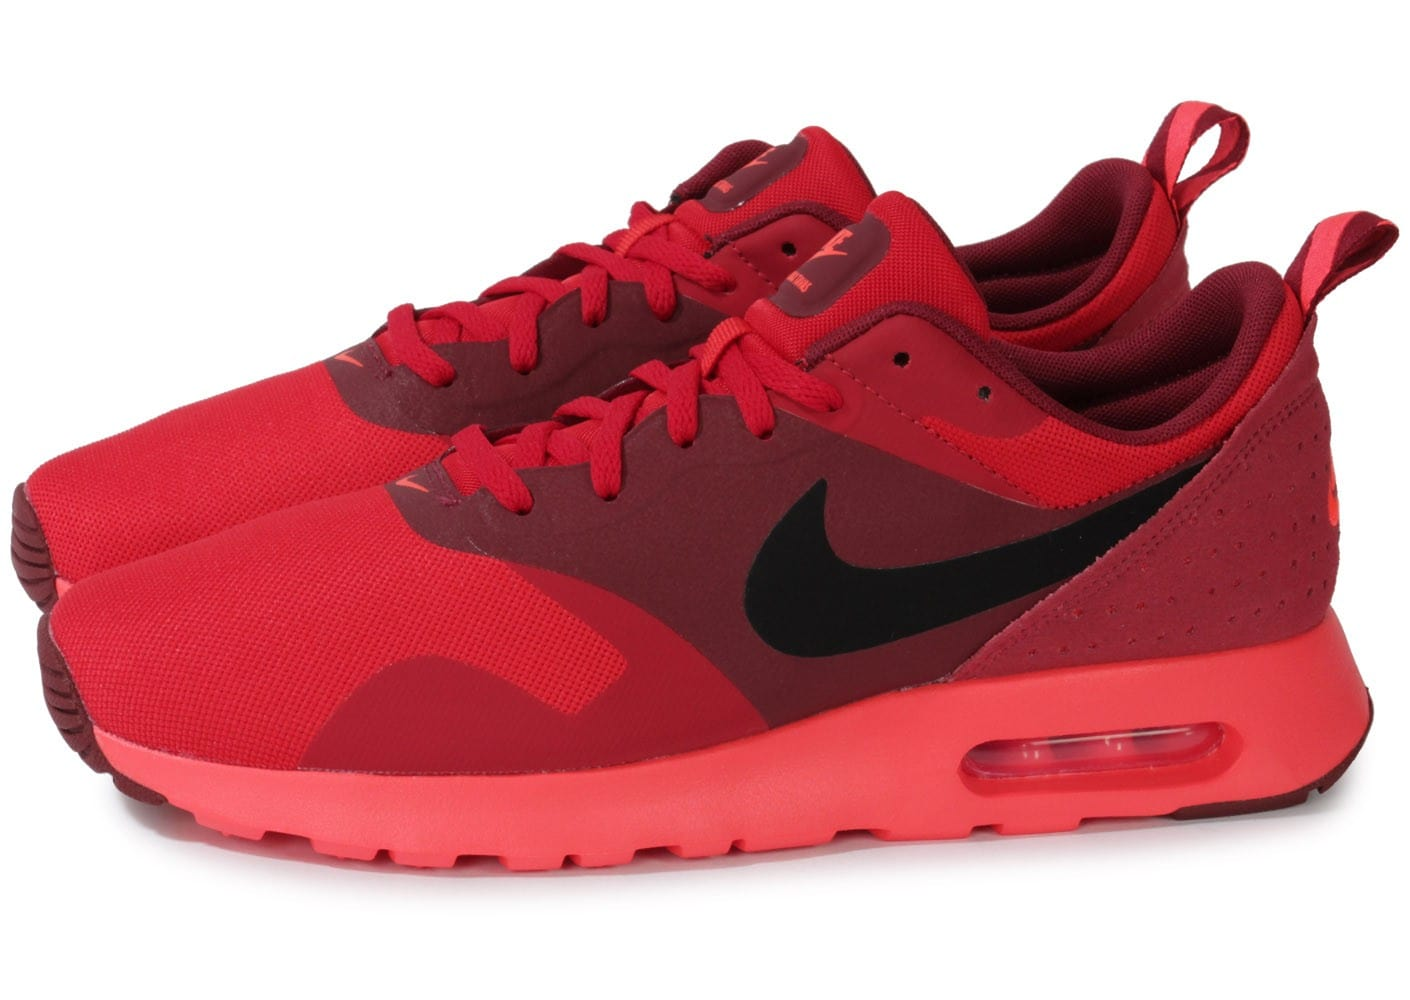 Nike Air Max Tavas Rouge Chaussures Baskets homme Chausport